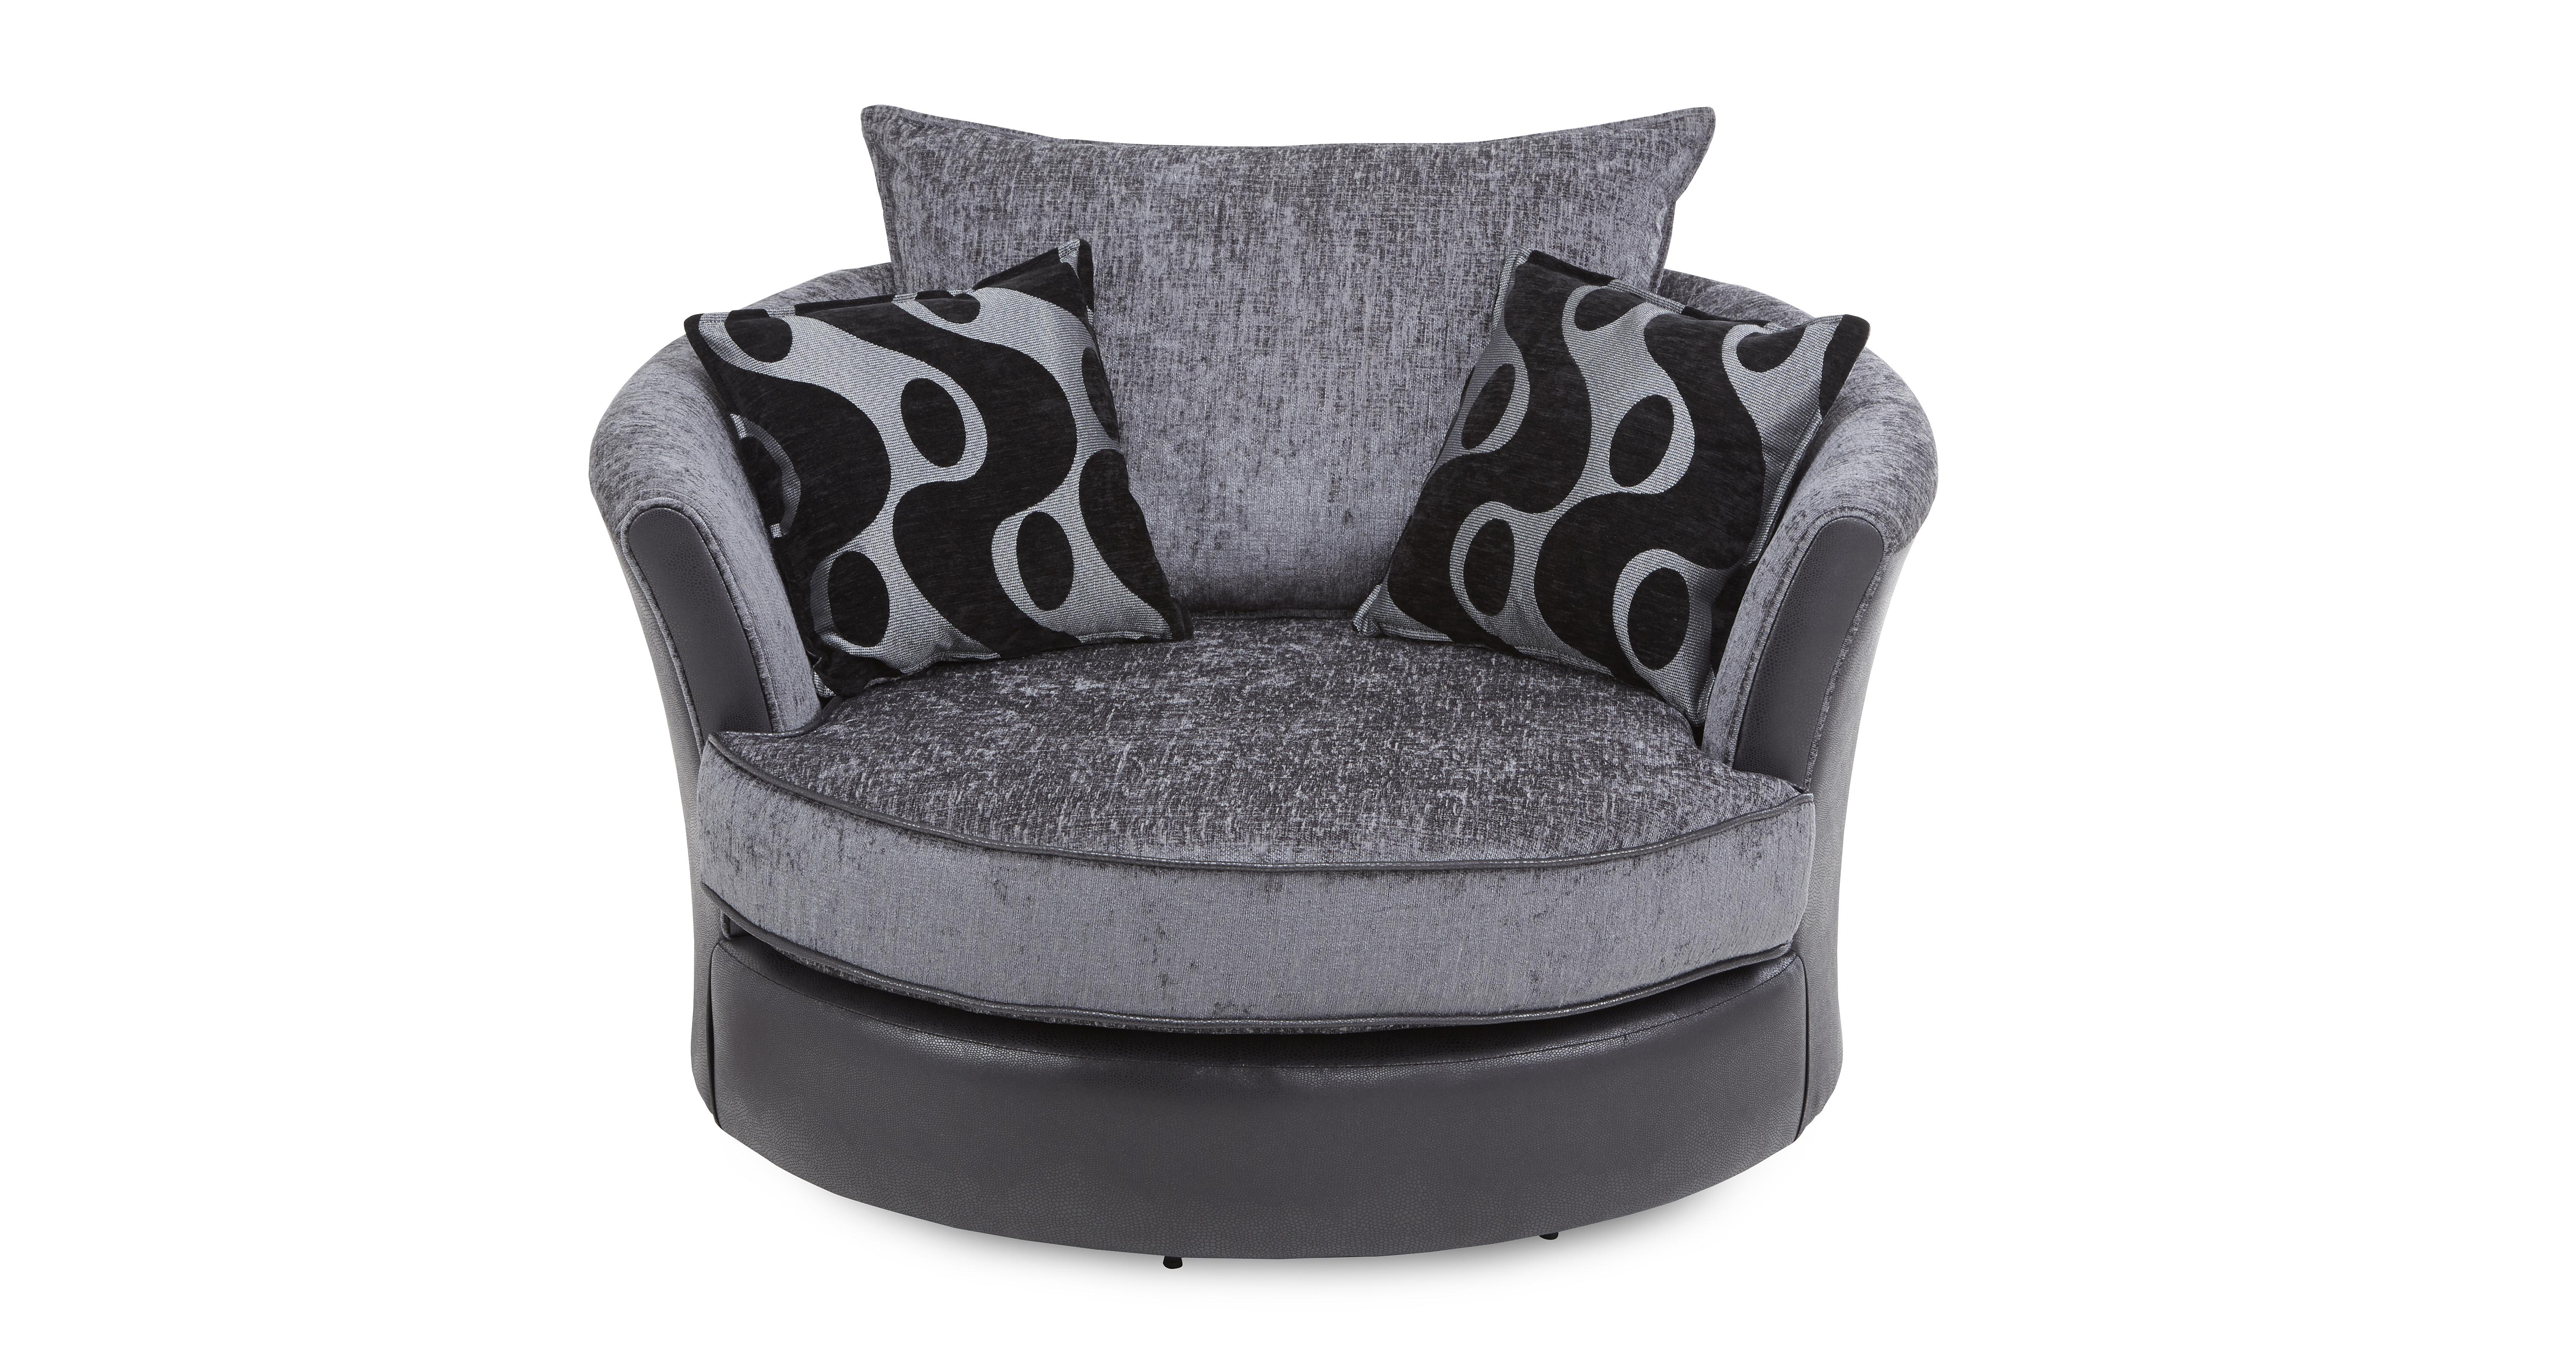 Scs Bedroom Furniture Chairs Chaise Longue Swivel And Snuggle Chairs Dfs